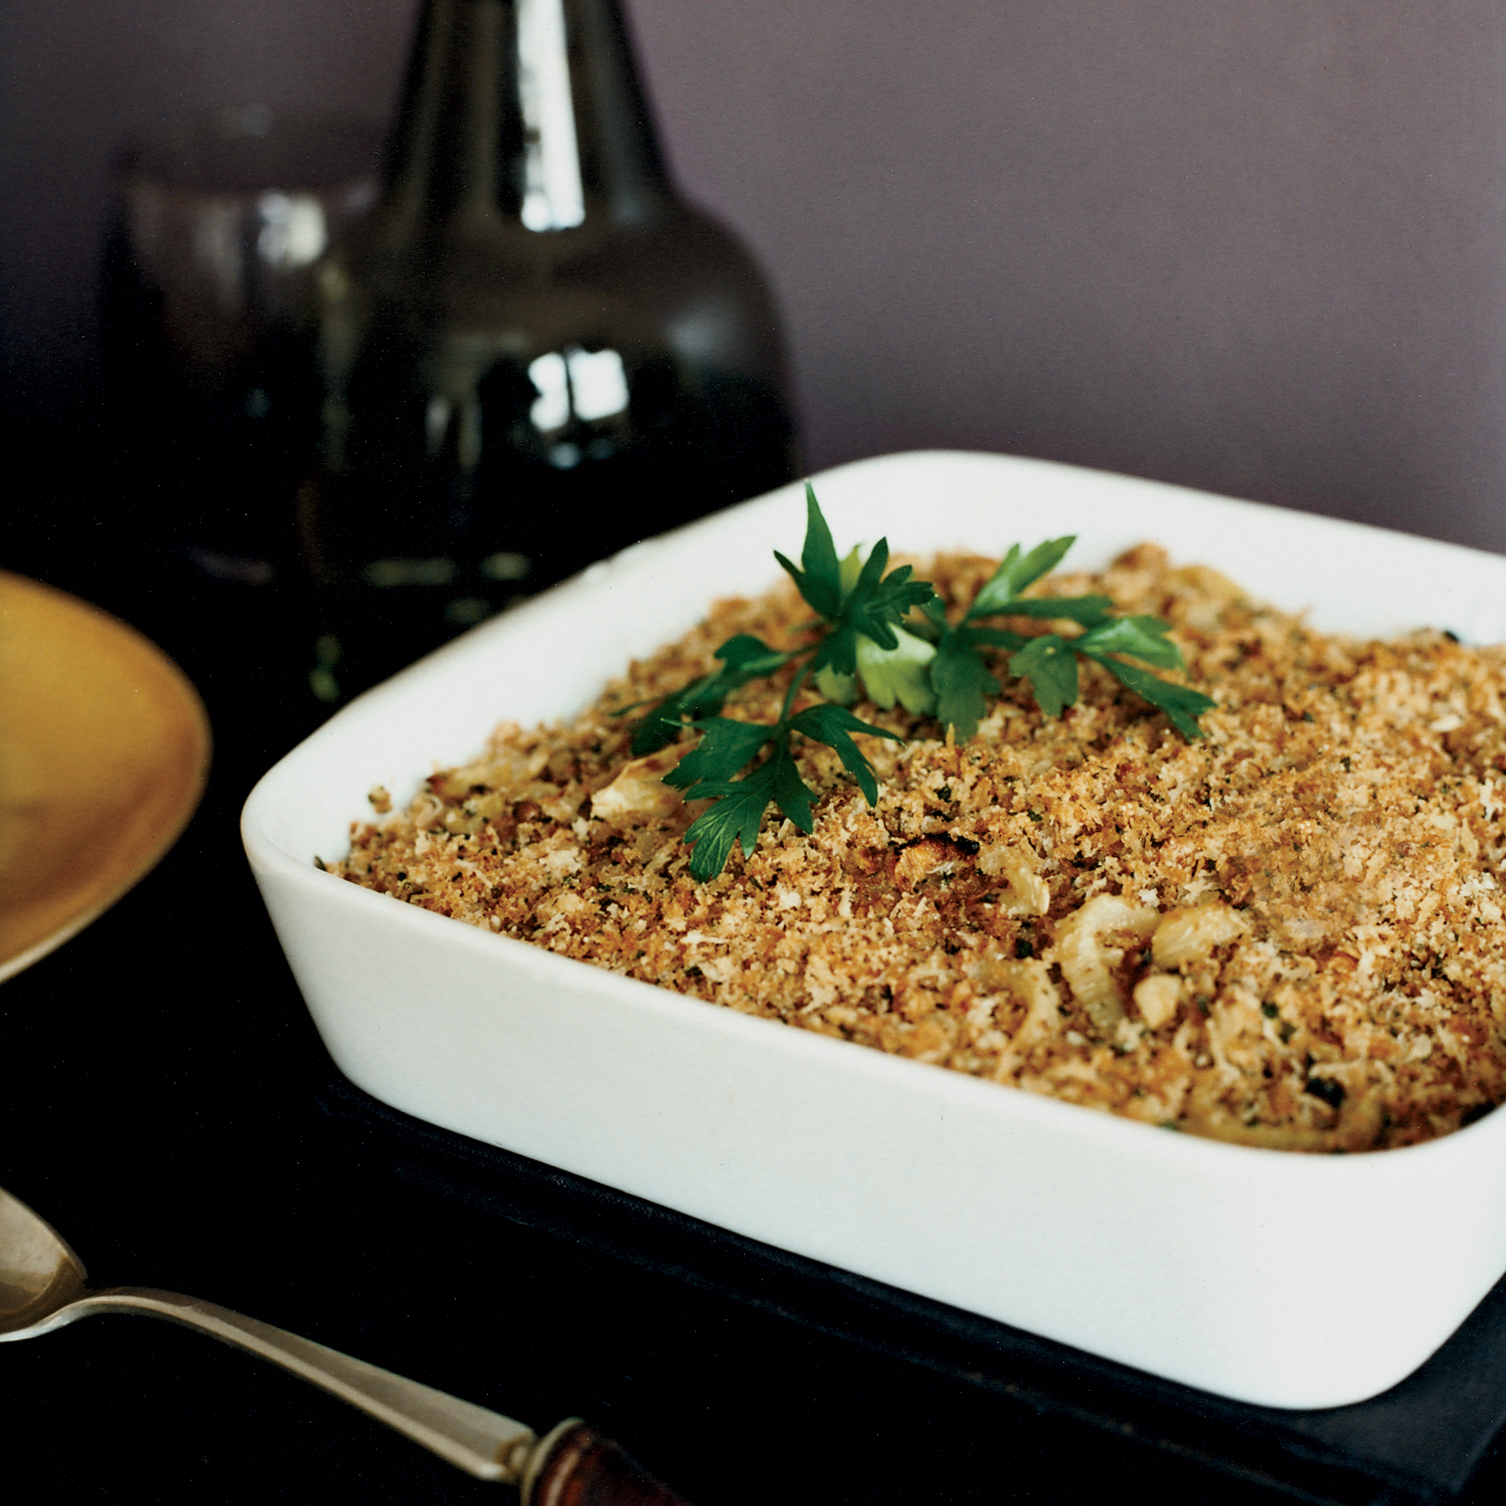 Crunchy Baked Fennel